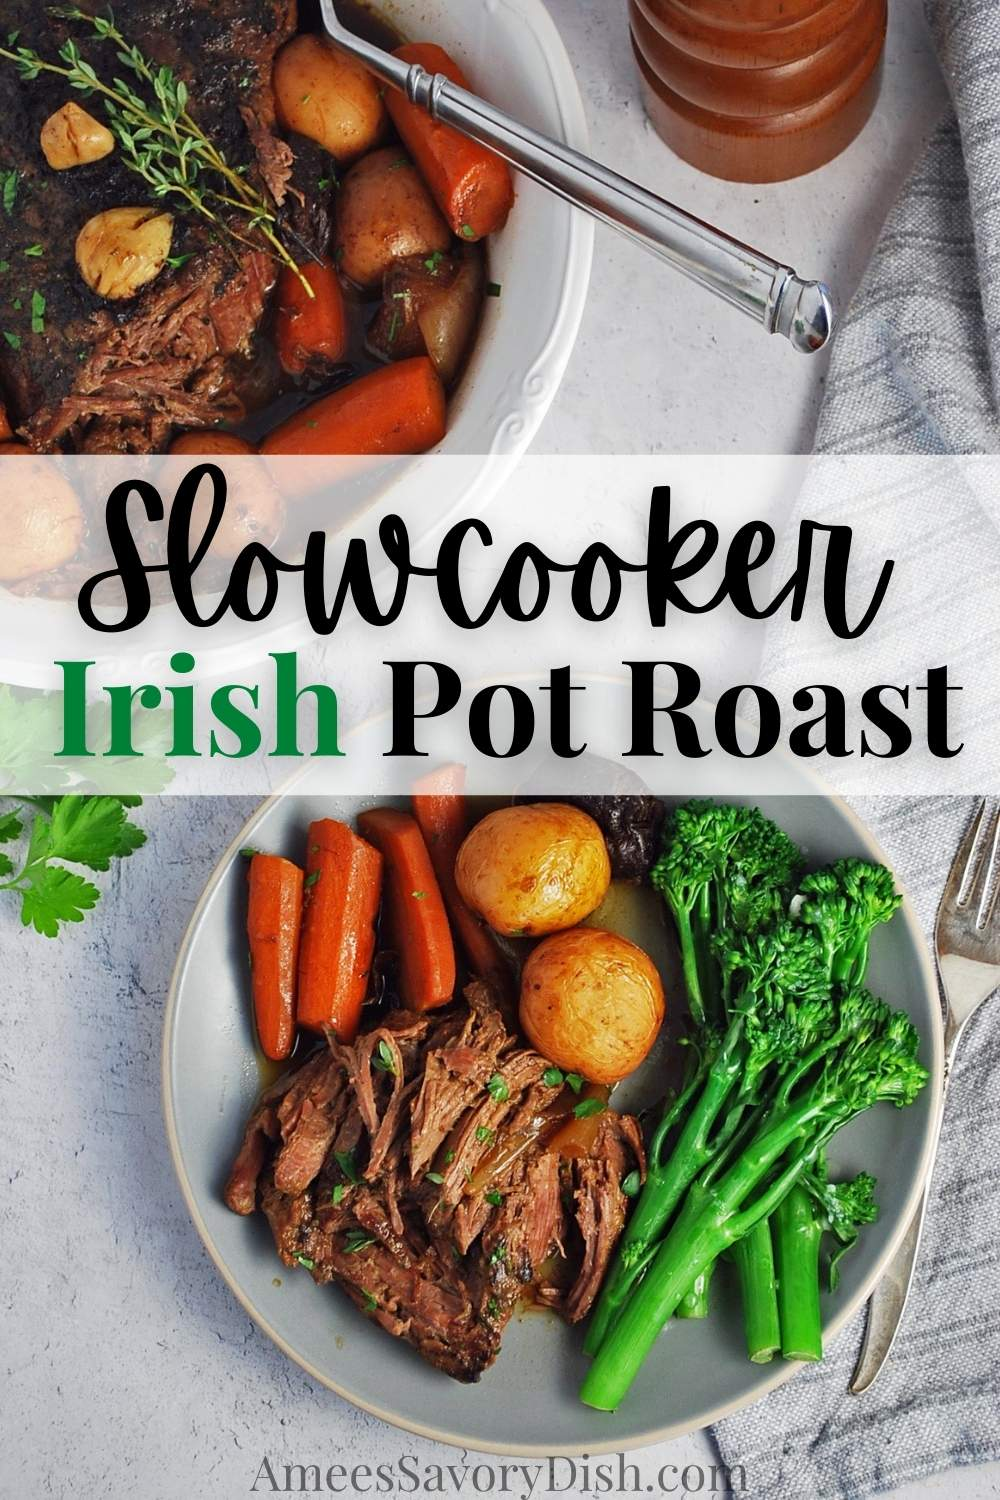 #Sponsored This flavorful Irish Pot Roast recipe made with Beef Shoulder Roast, vegetables, and stout beer cooks away in the slow cooker while you go about your day! @beeffordinner #BeefItsWhatsForDinner #NicelyDone #BeefFarmersandRanchers #StPatricksDay via @Ameessavorydish